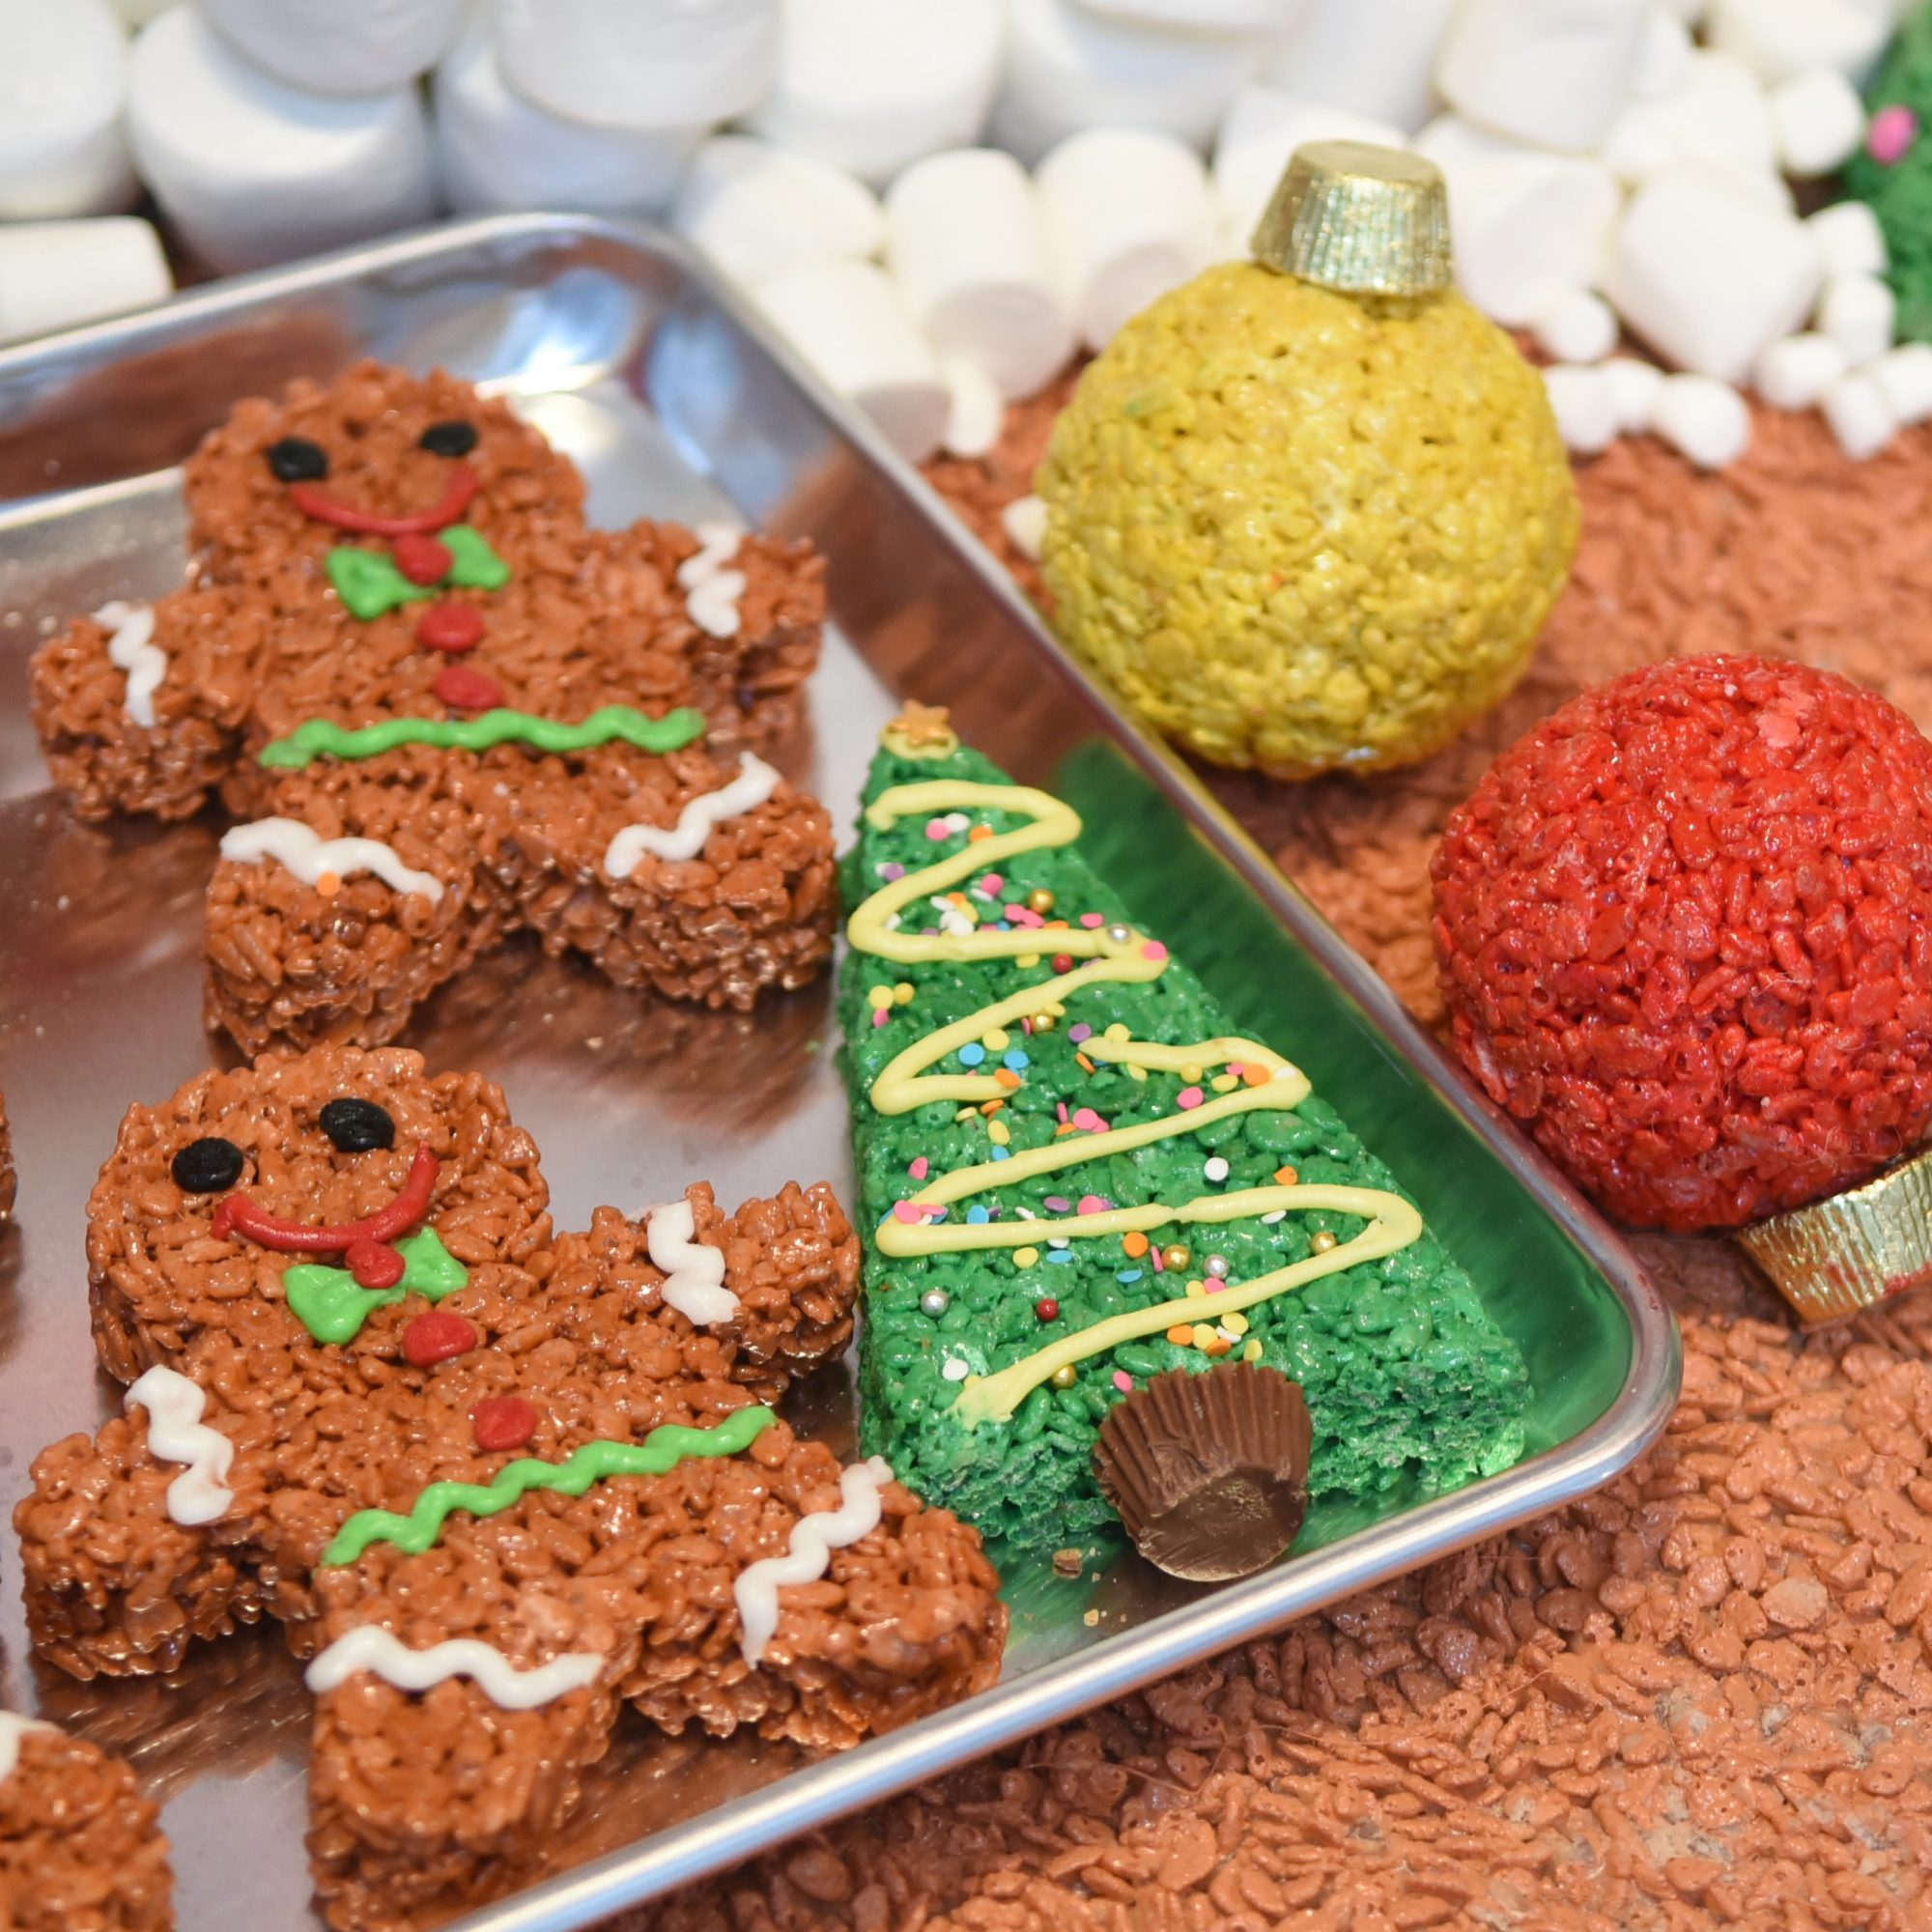 Rice Krispies Treats gingerbread men and ornaments